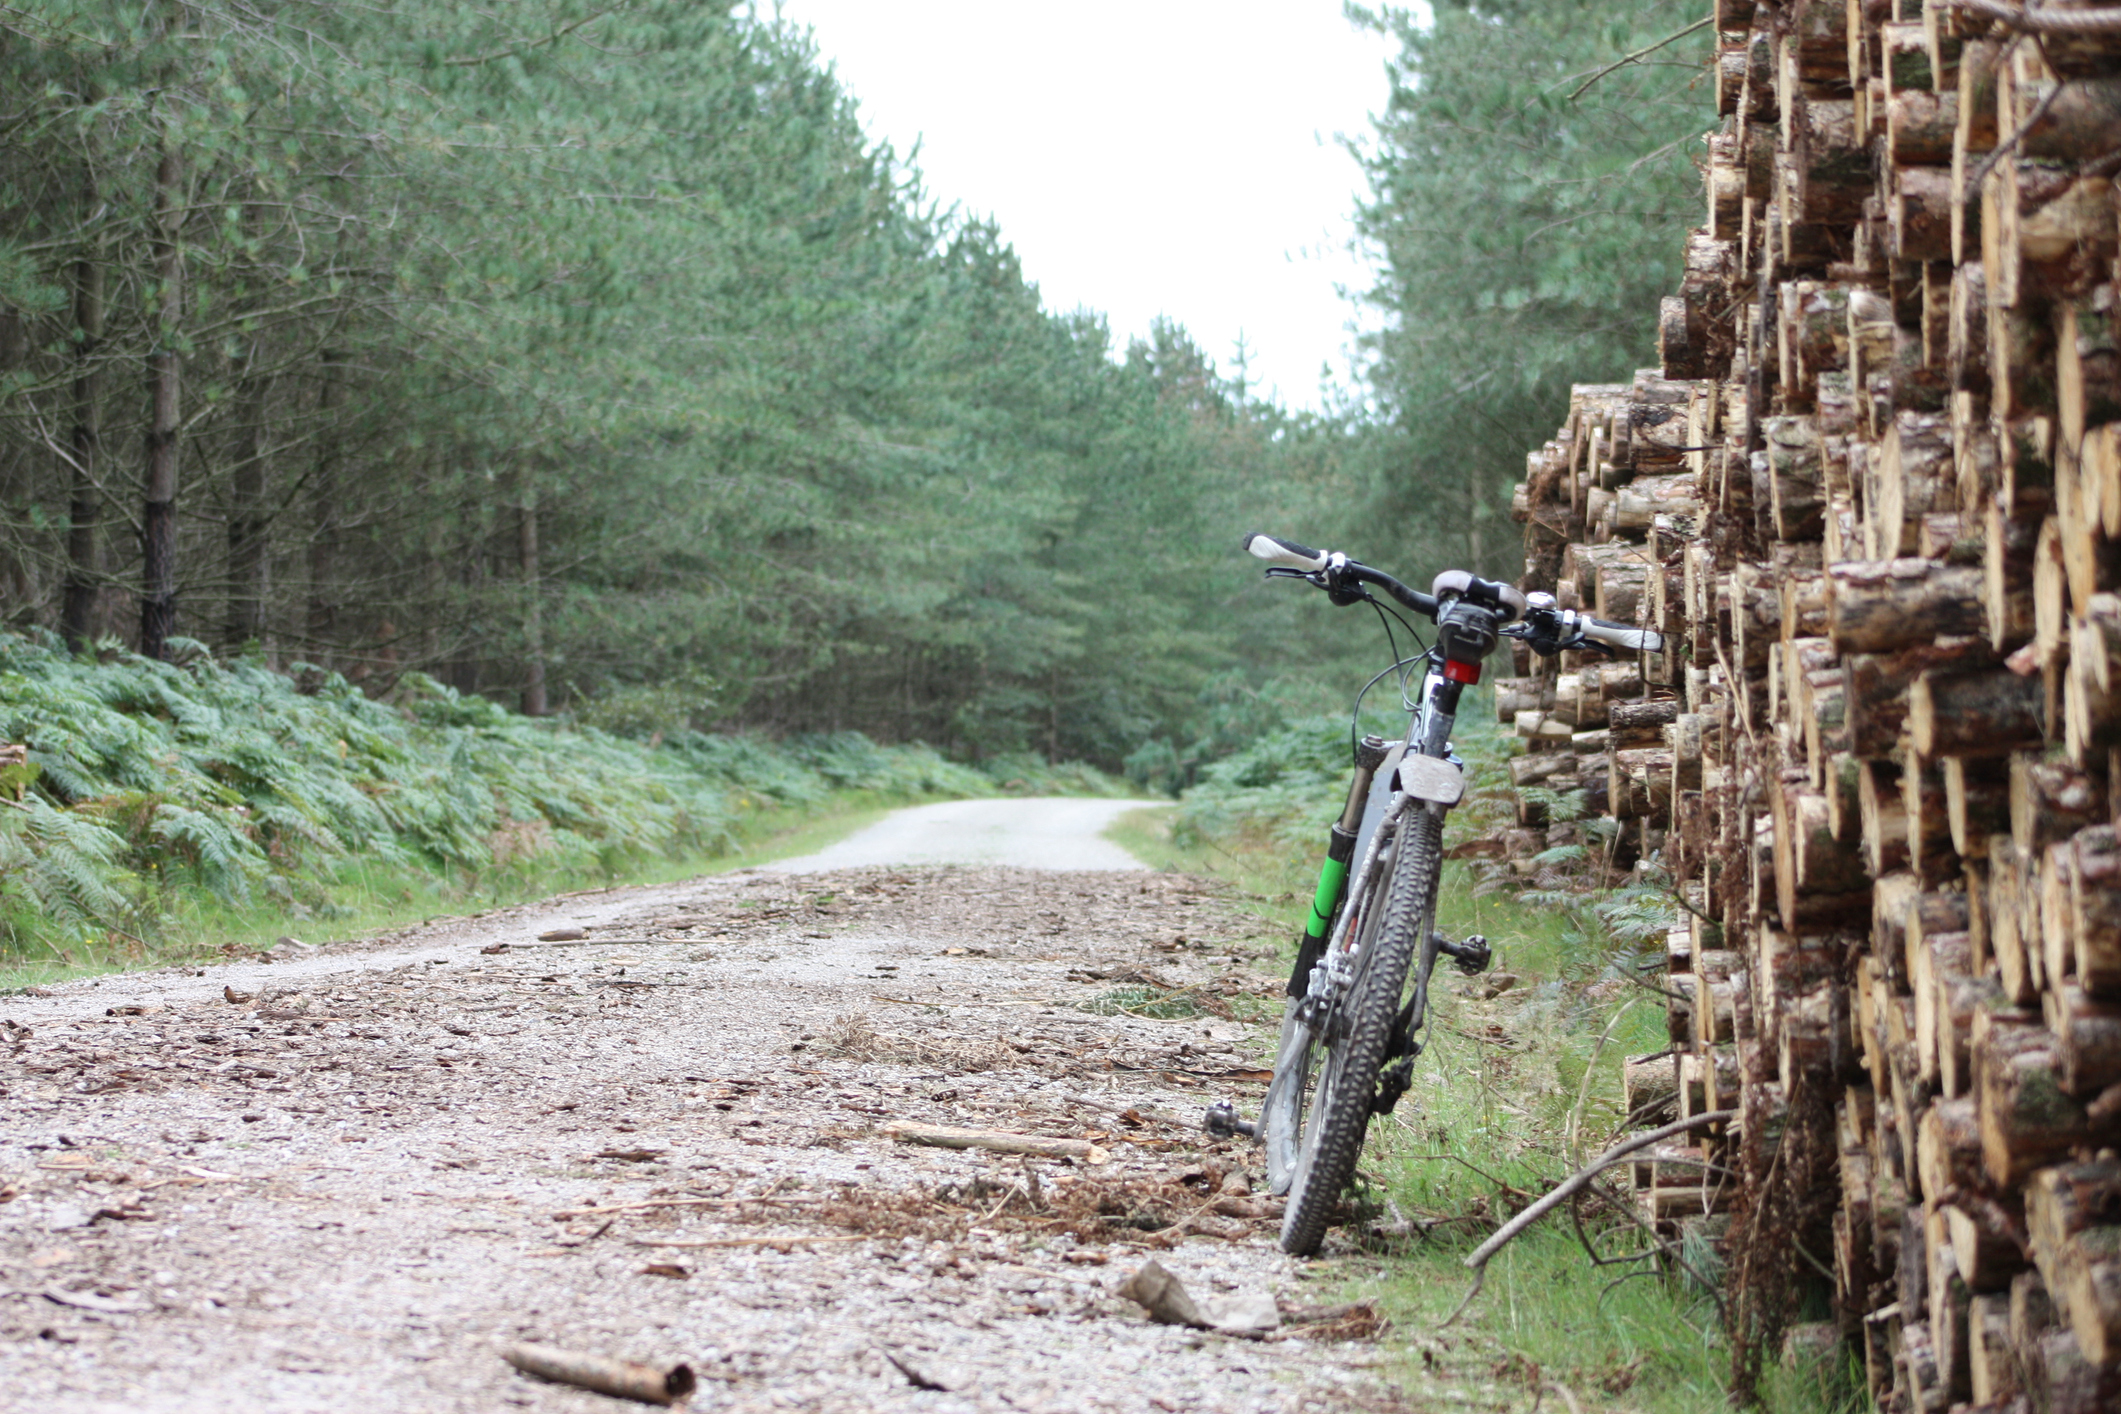 Mountain Bike With Sawn Wood Pile